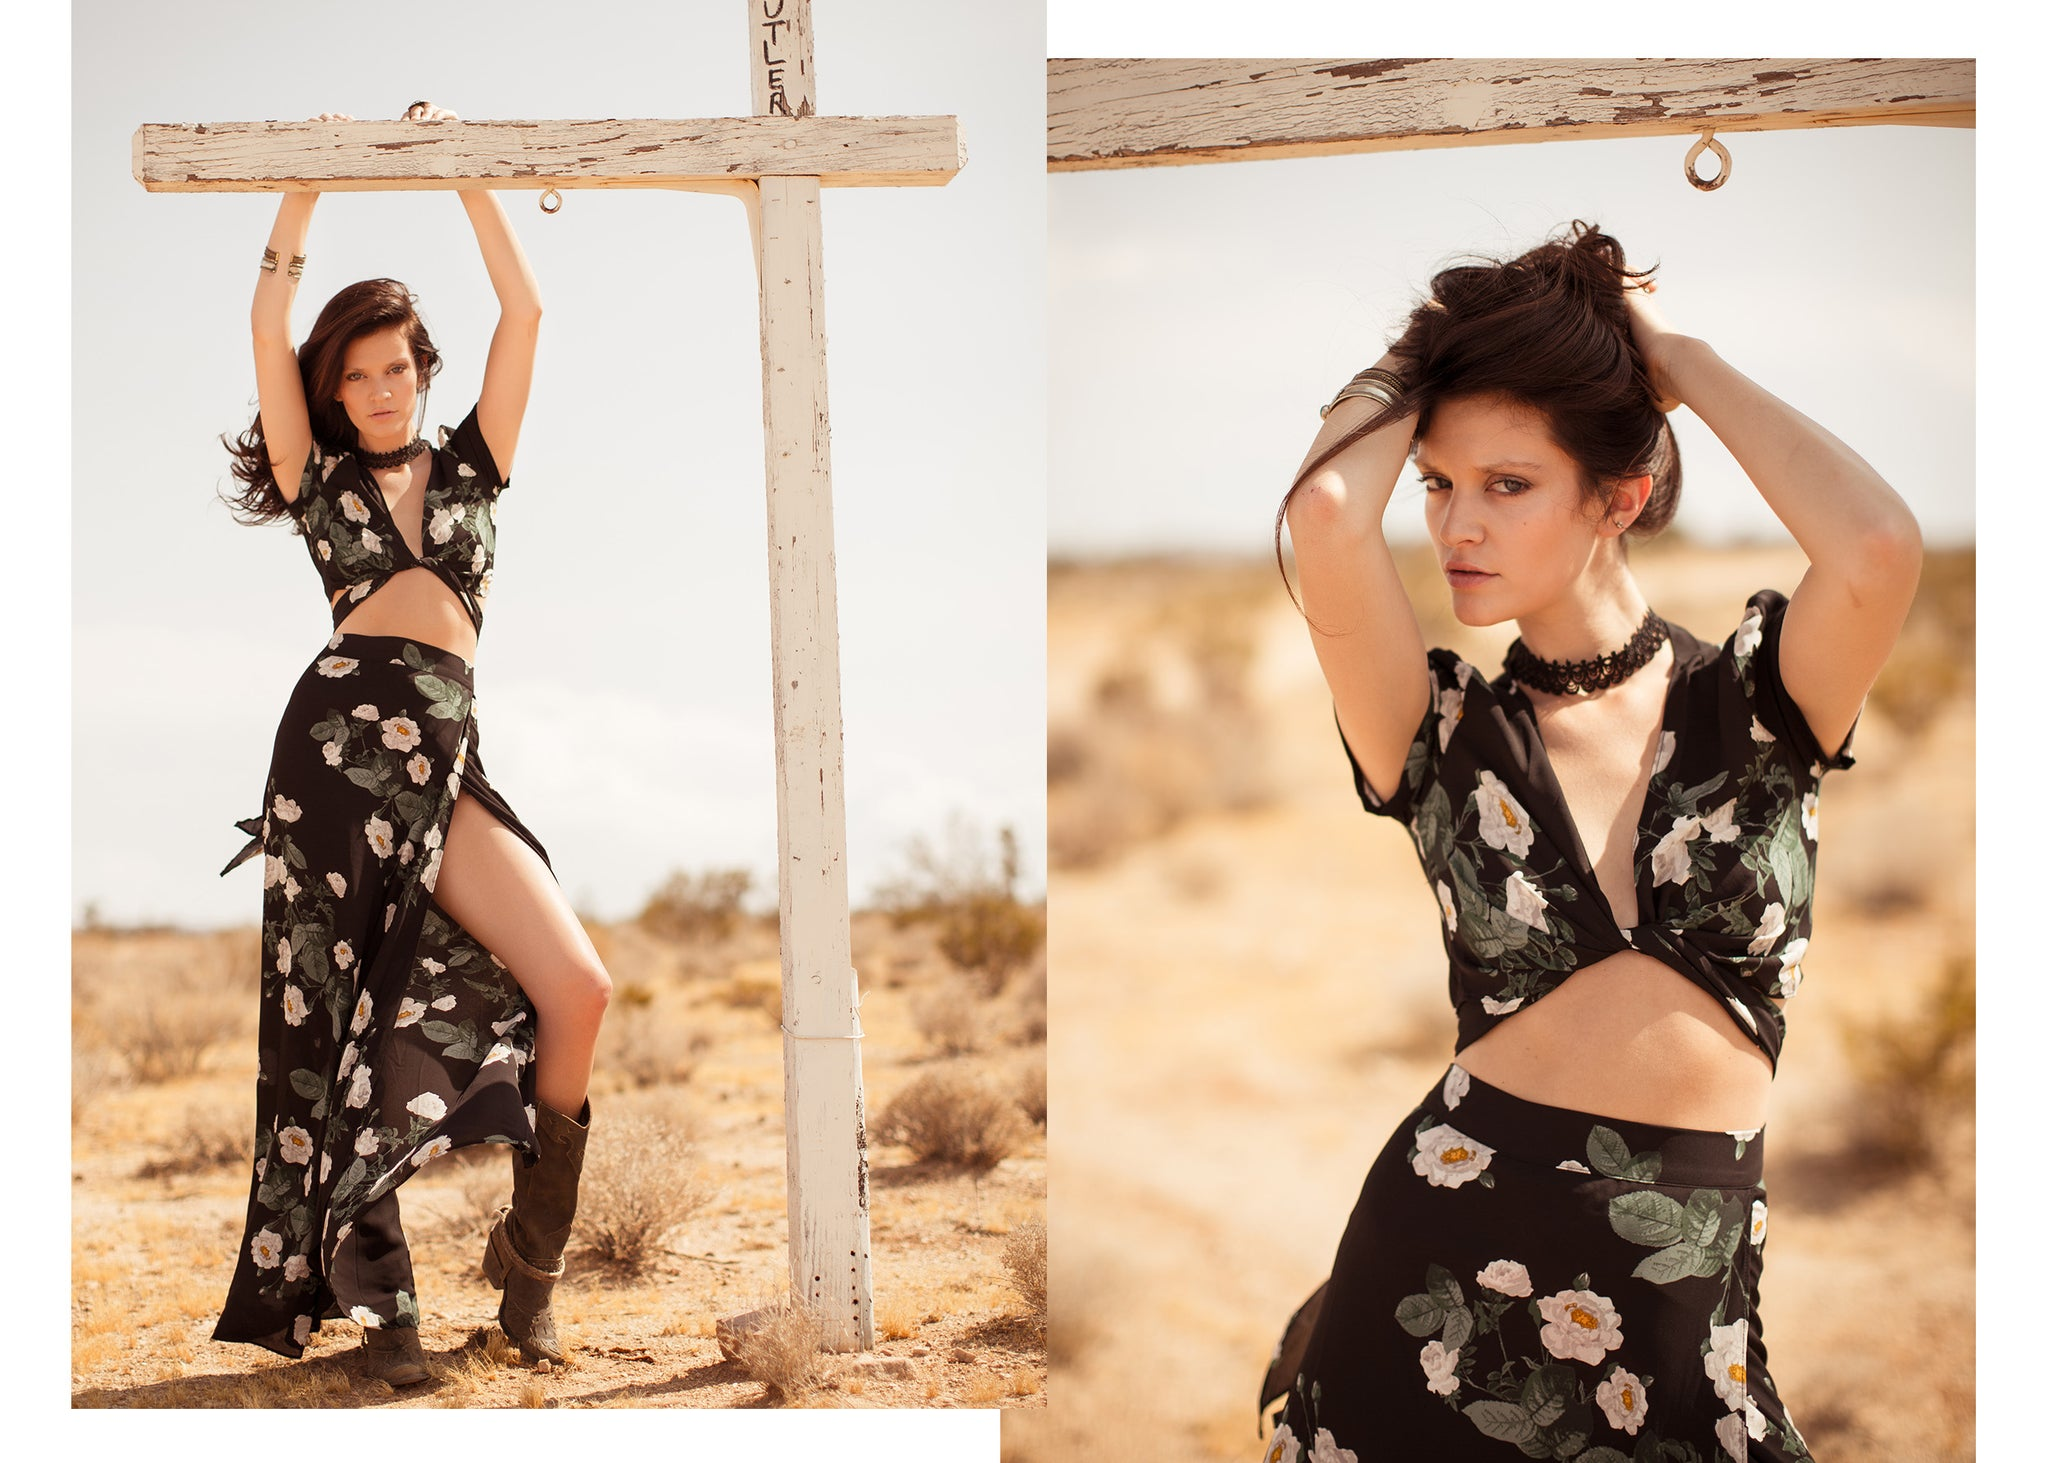 Hapa Clothing- Gypsy flower skirt and crop top in desert